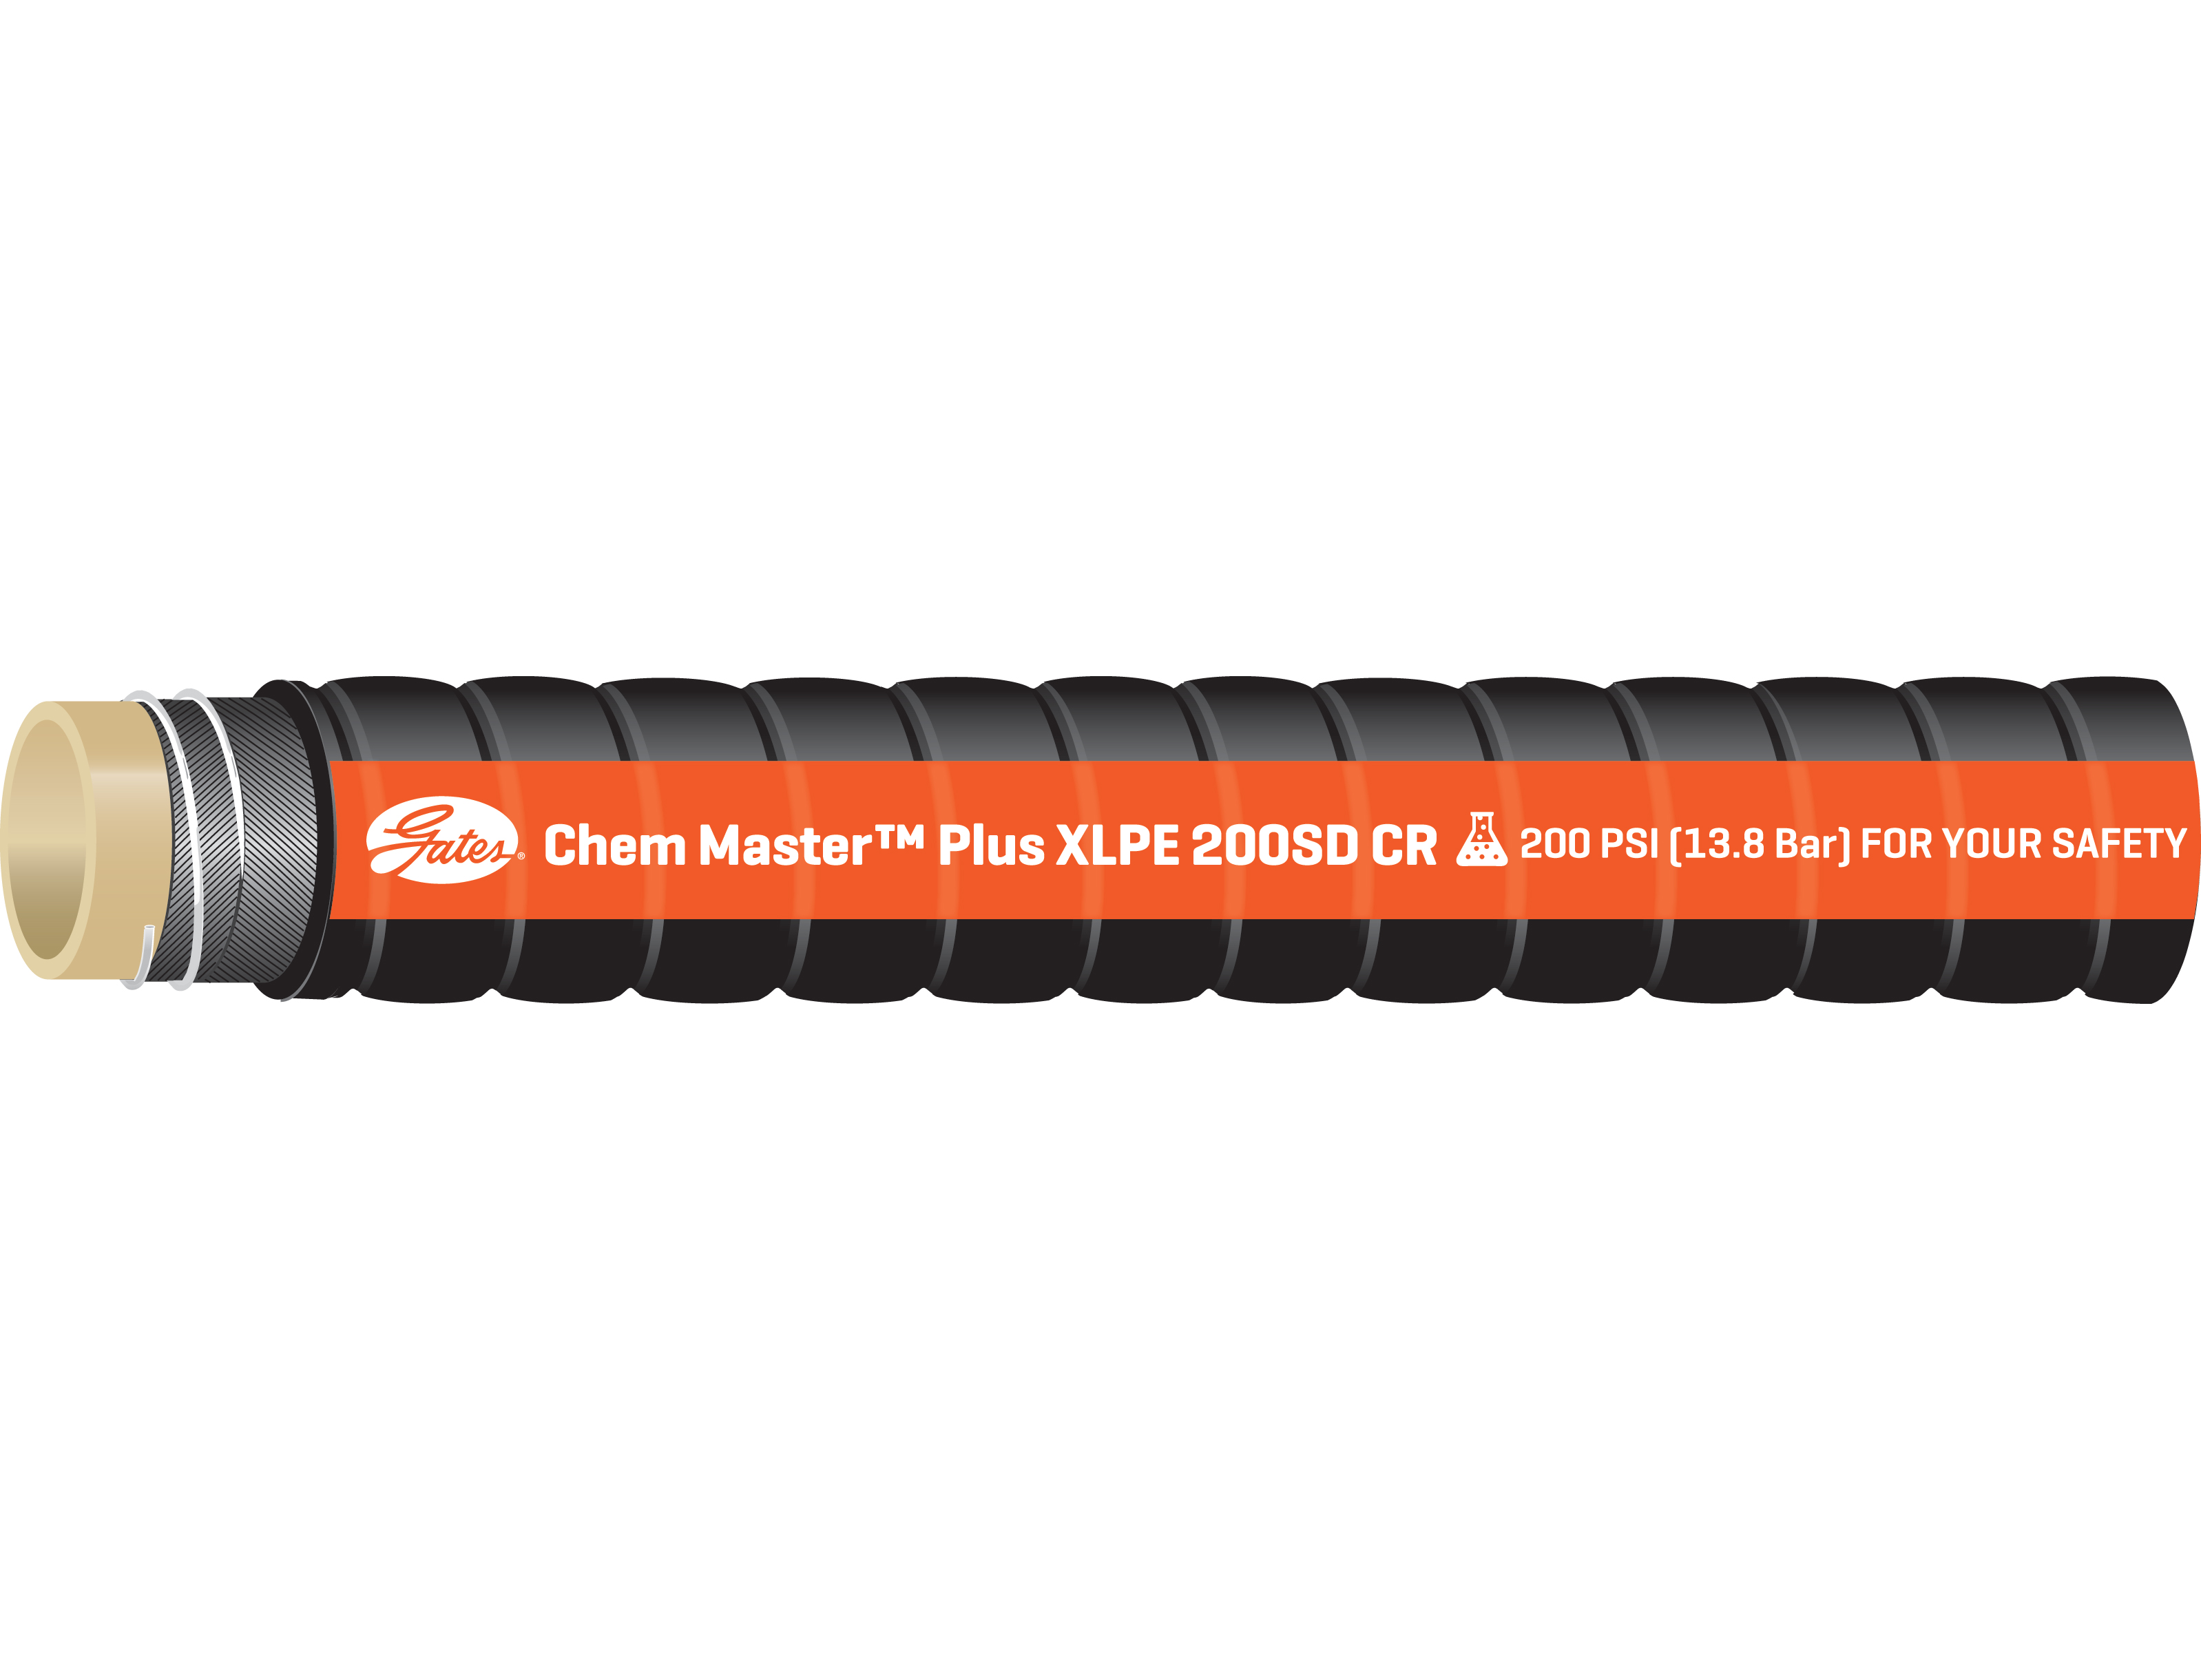 Chem Master Modified XLPE Crush-Resistant Hose